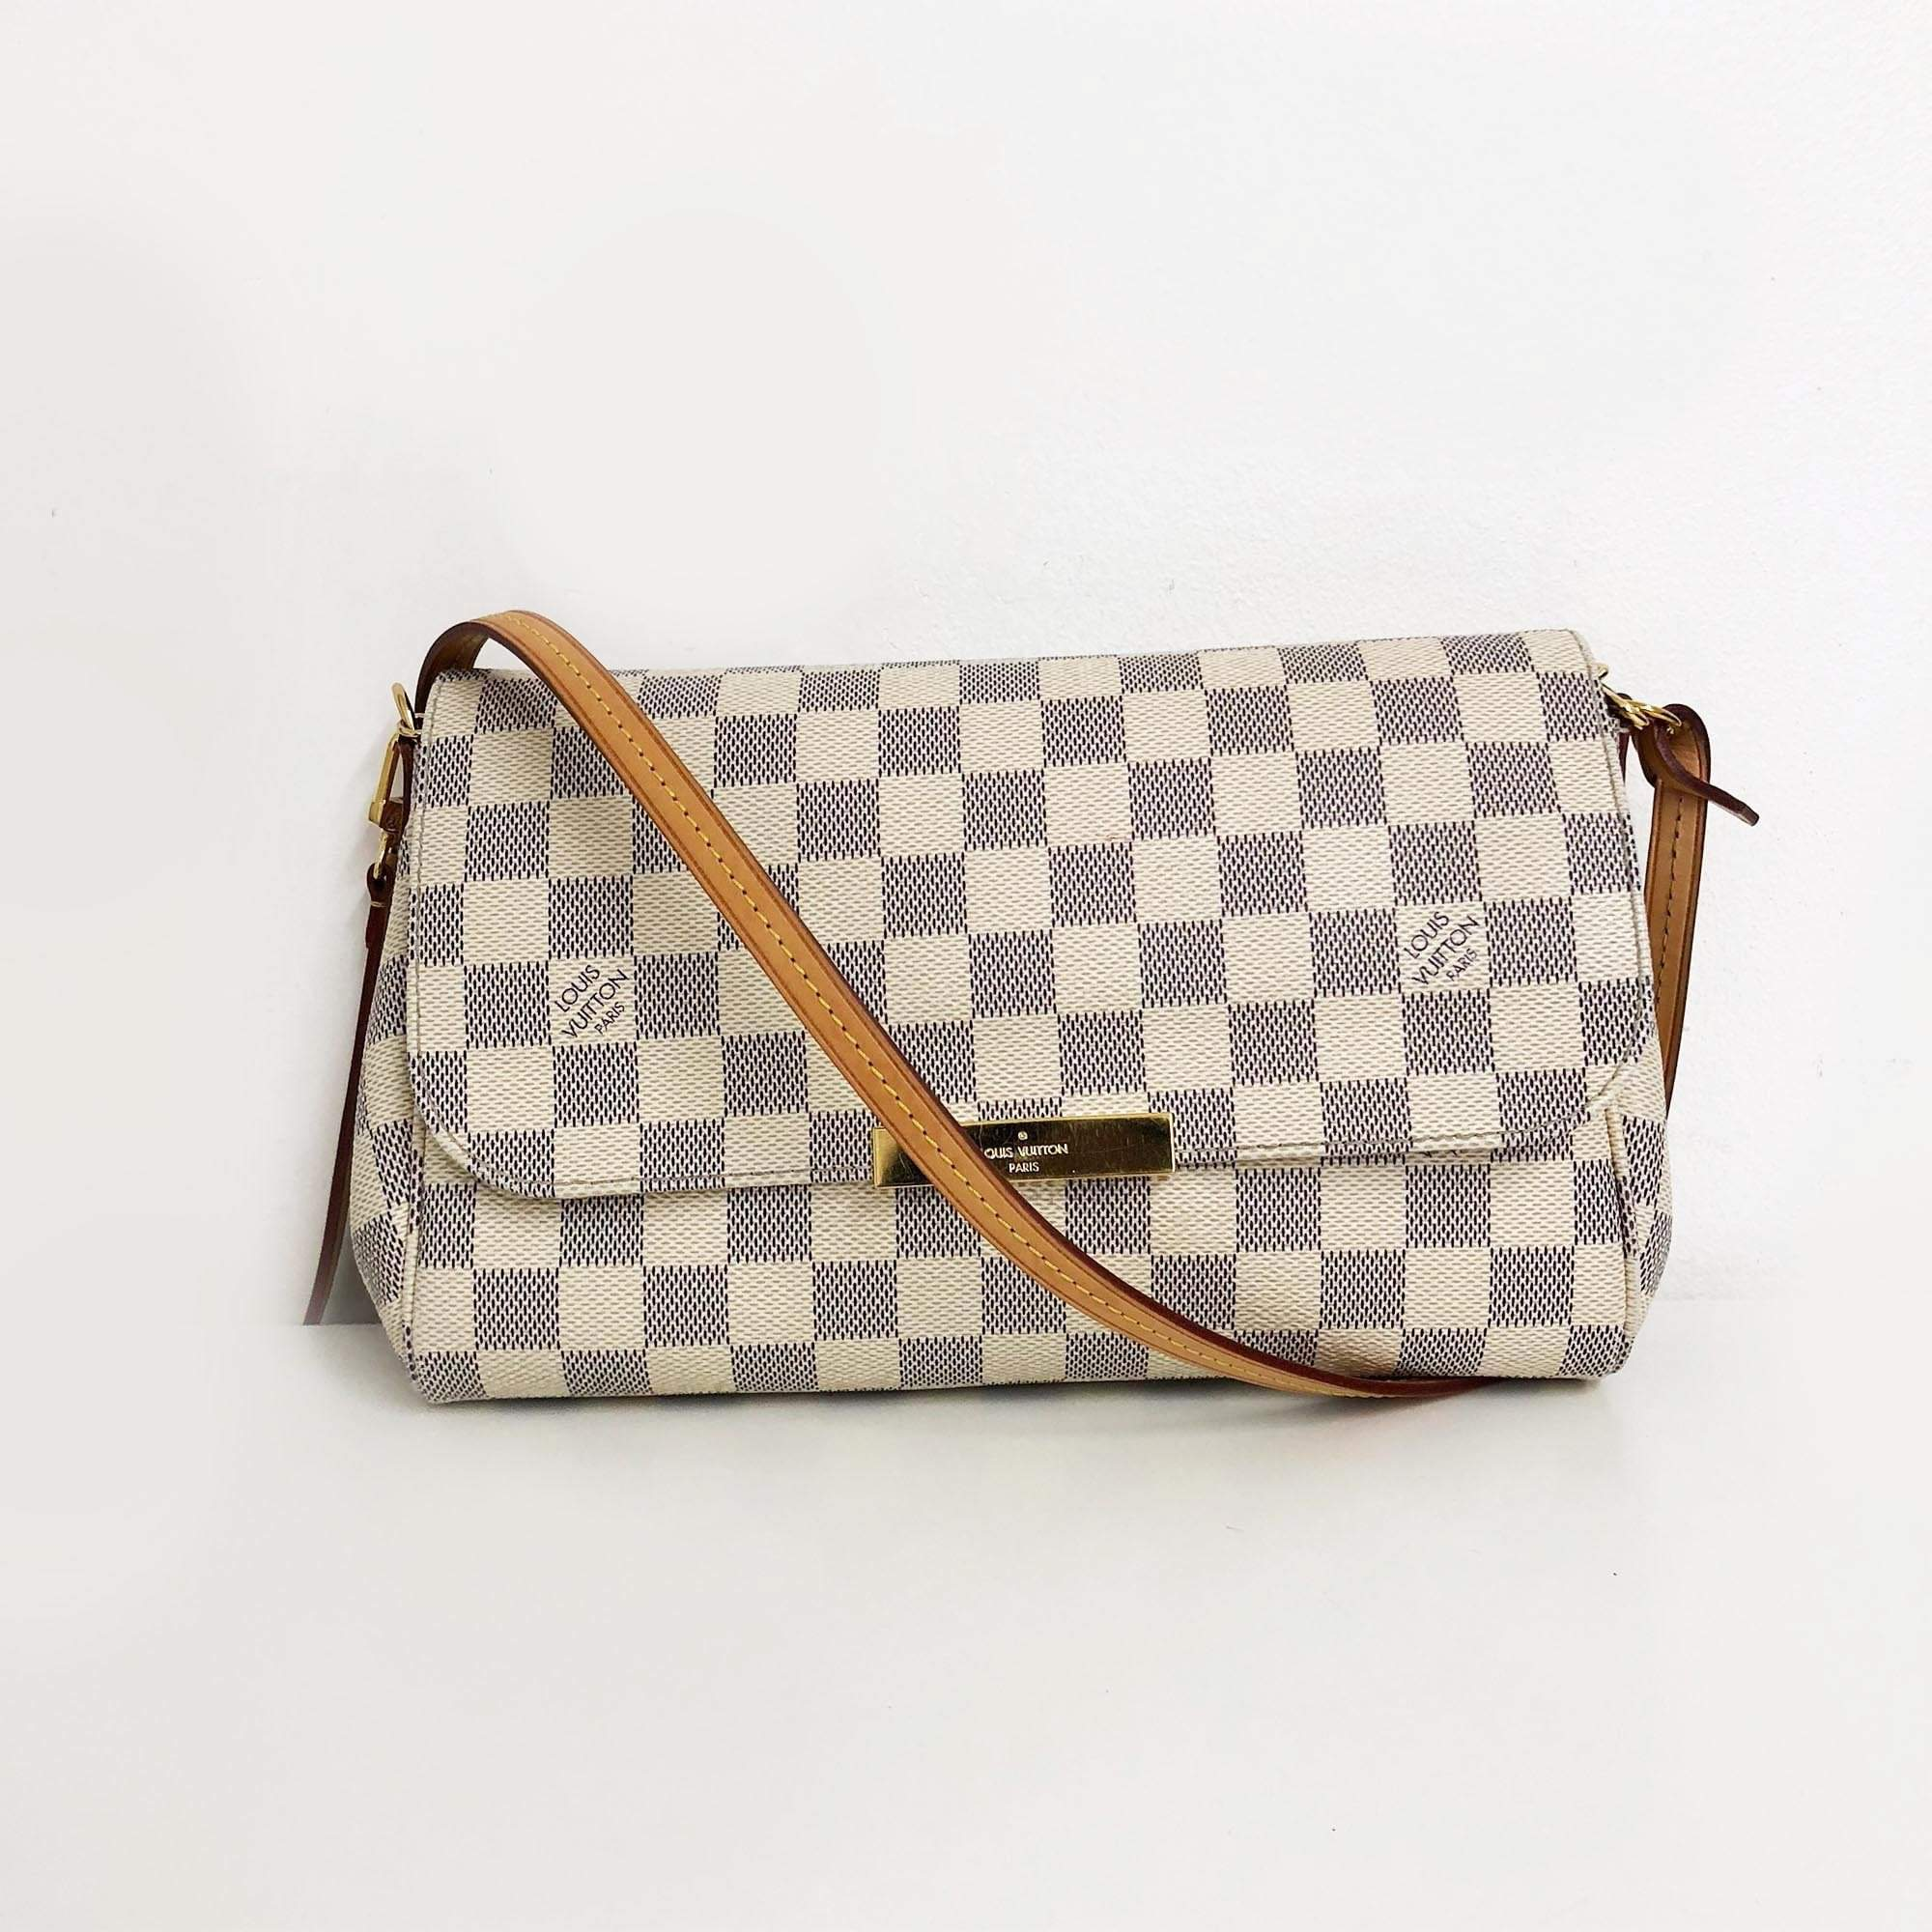 Louis Vuitton Azur Damier Favorite MM Bag